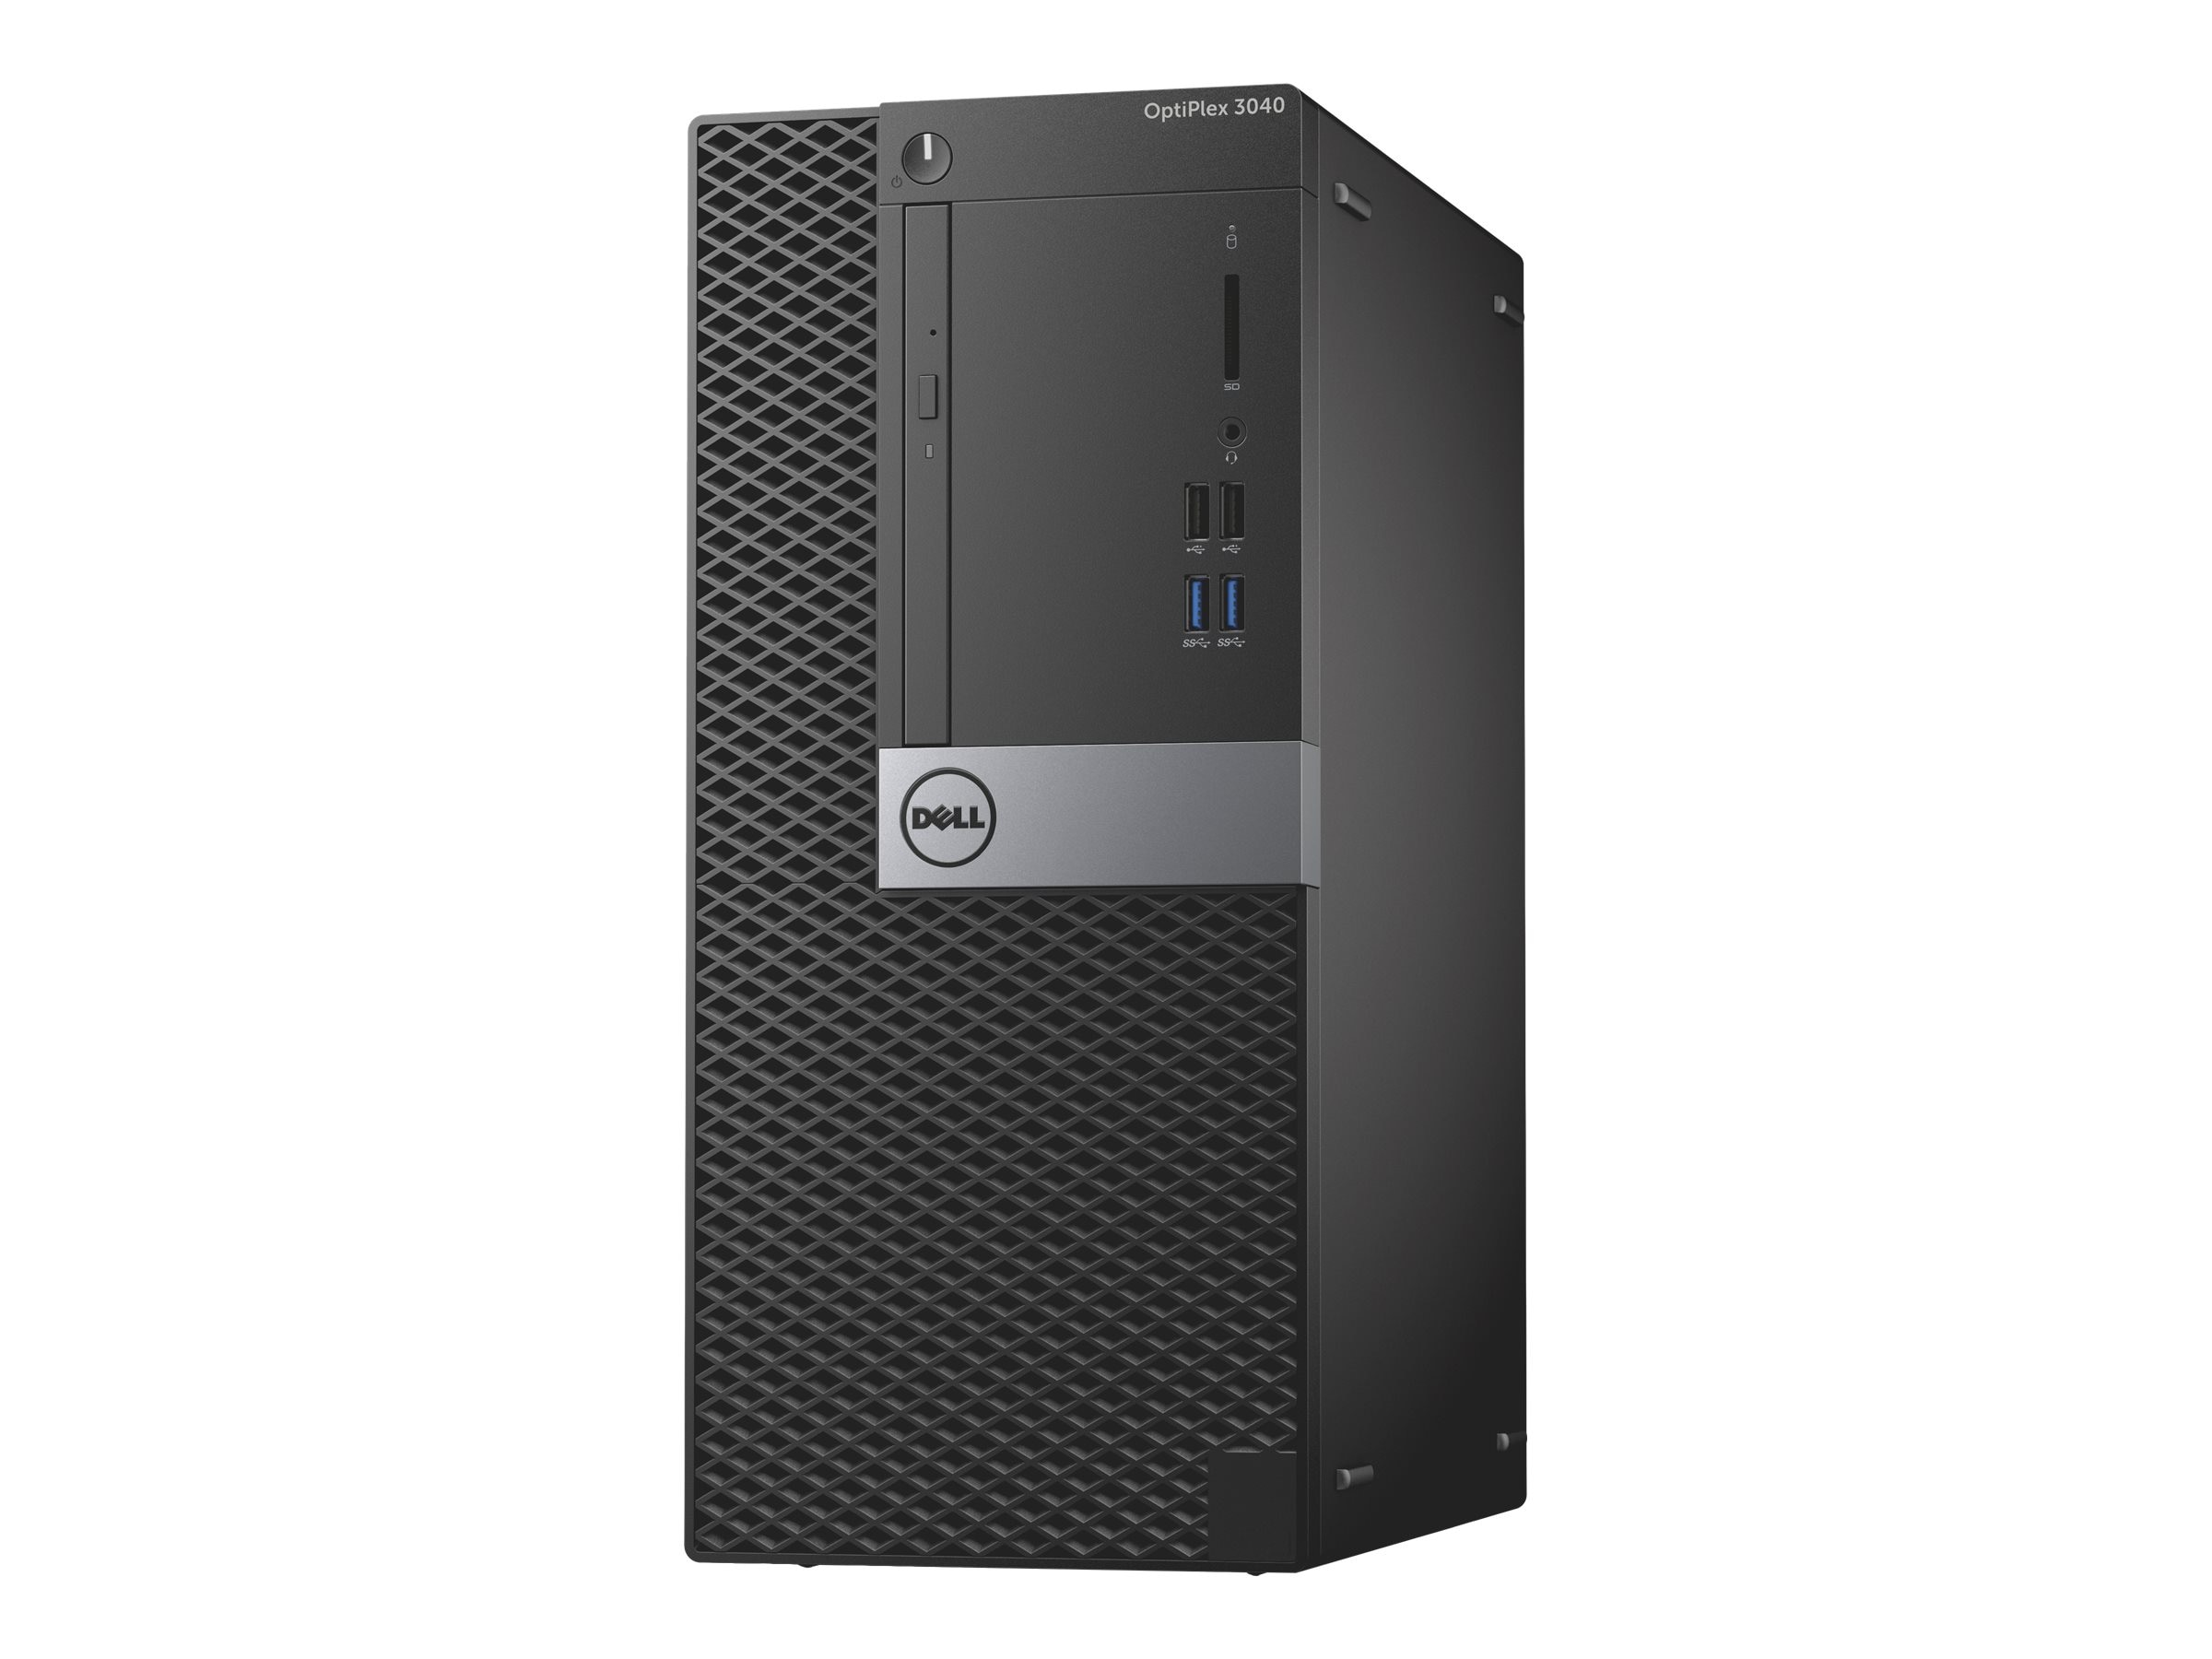 Dell OptiPlex 3040 3.2GHz Core i5 4GB RAM 500GB hard drive